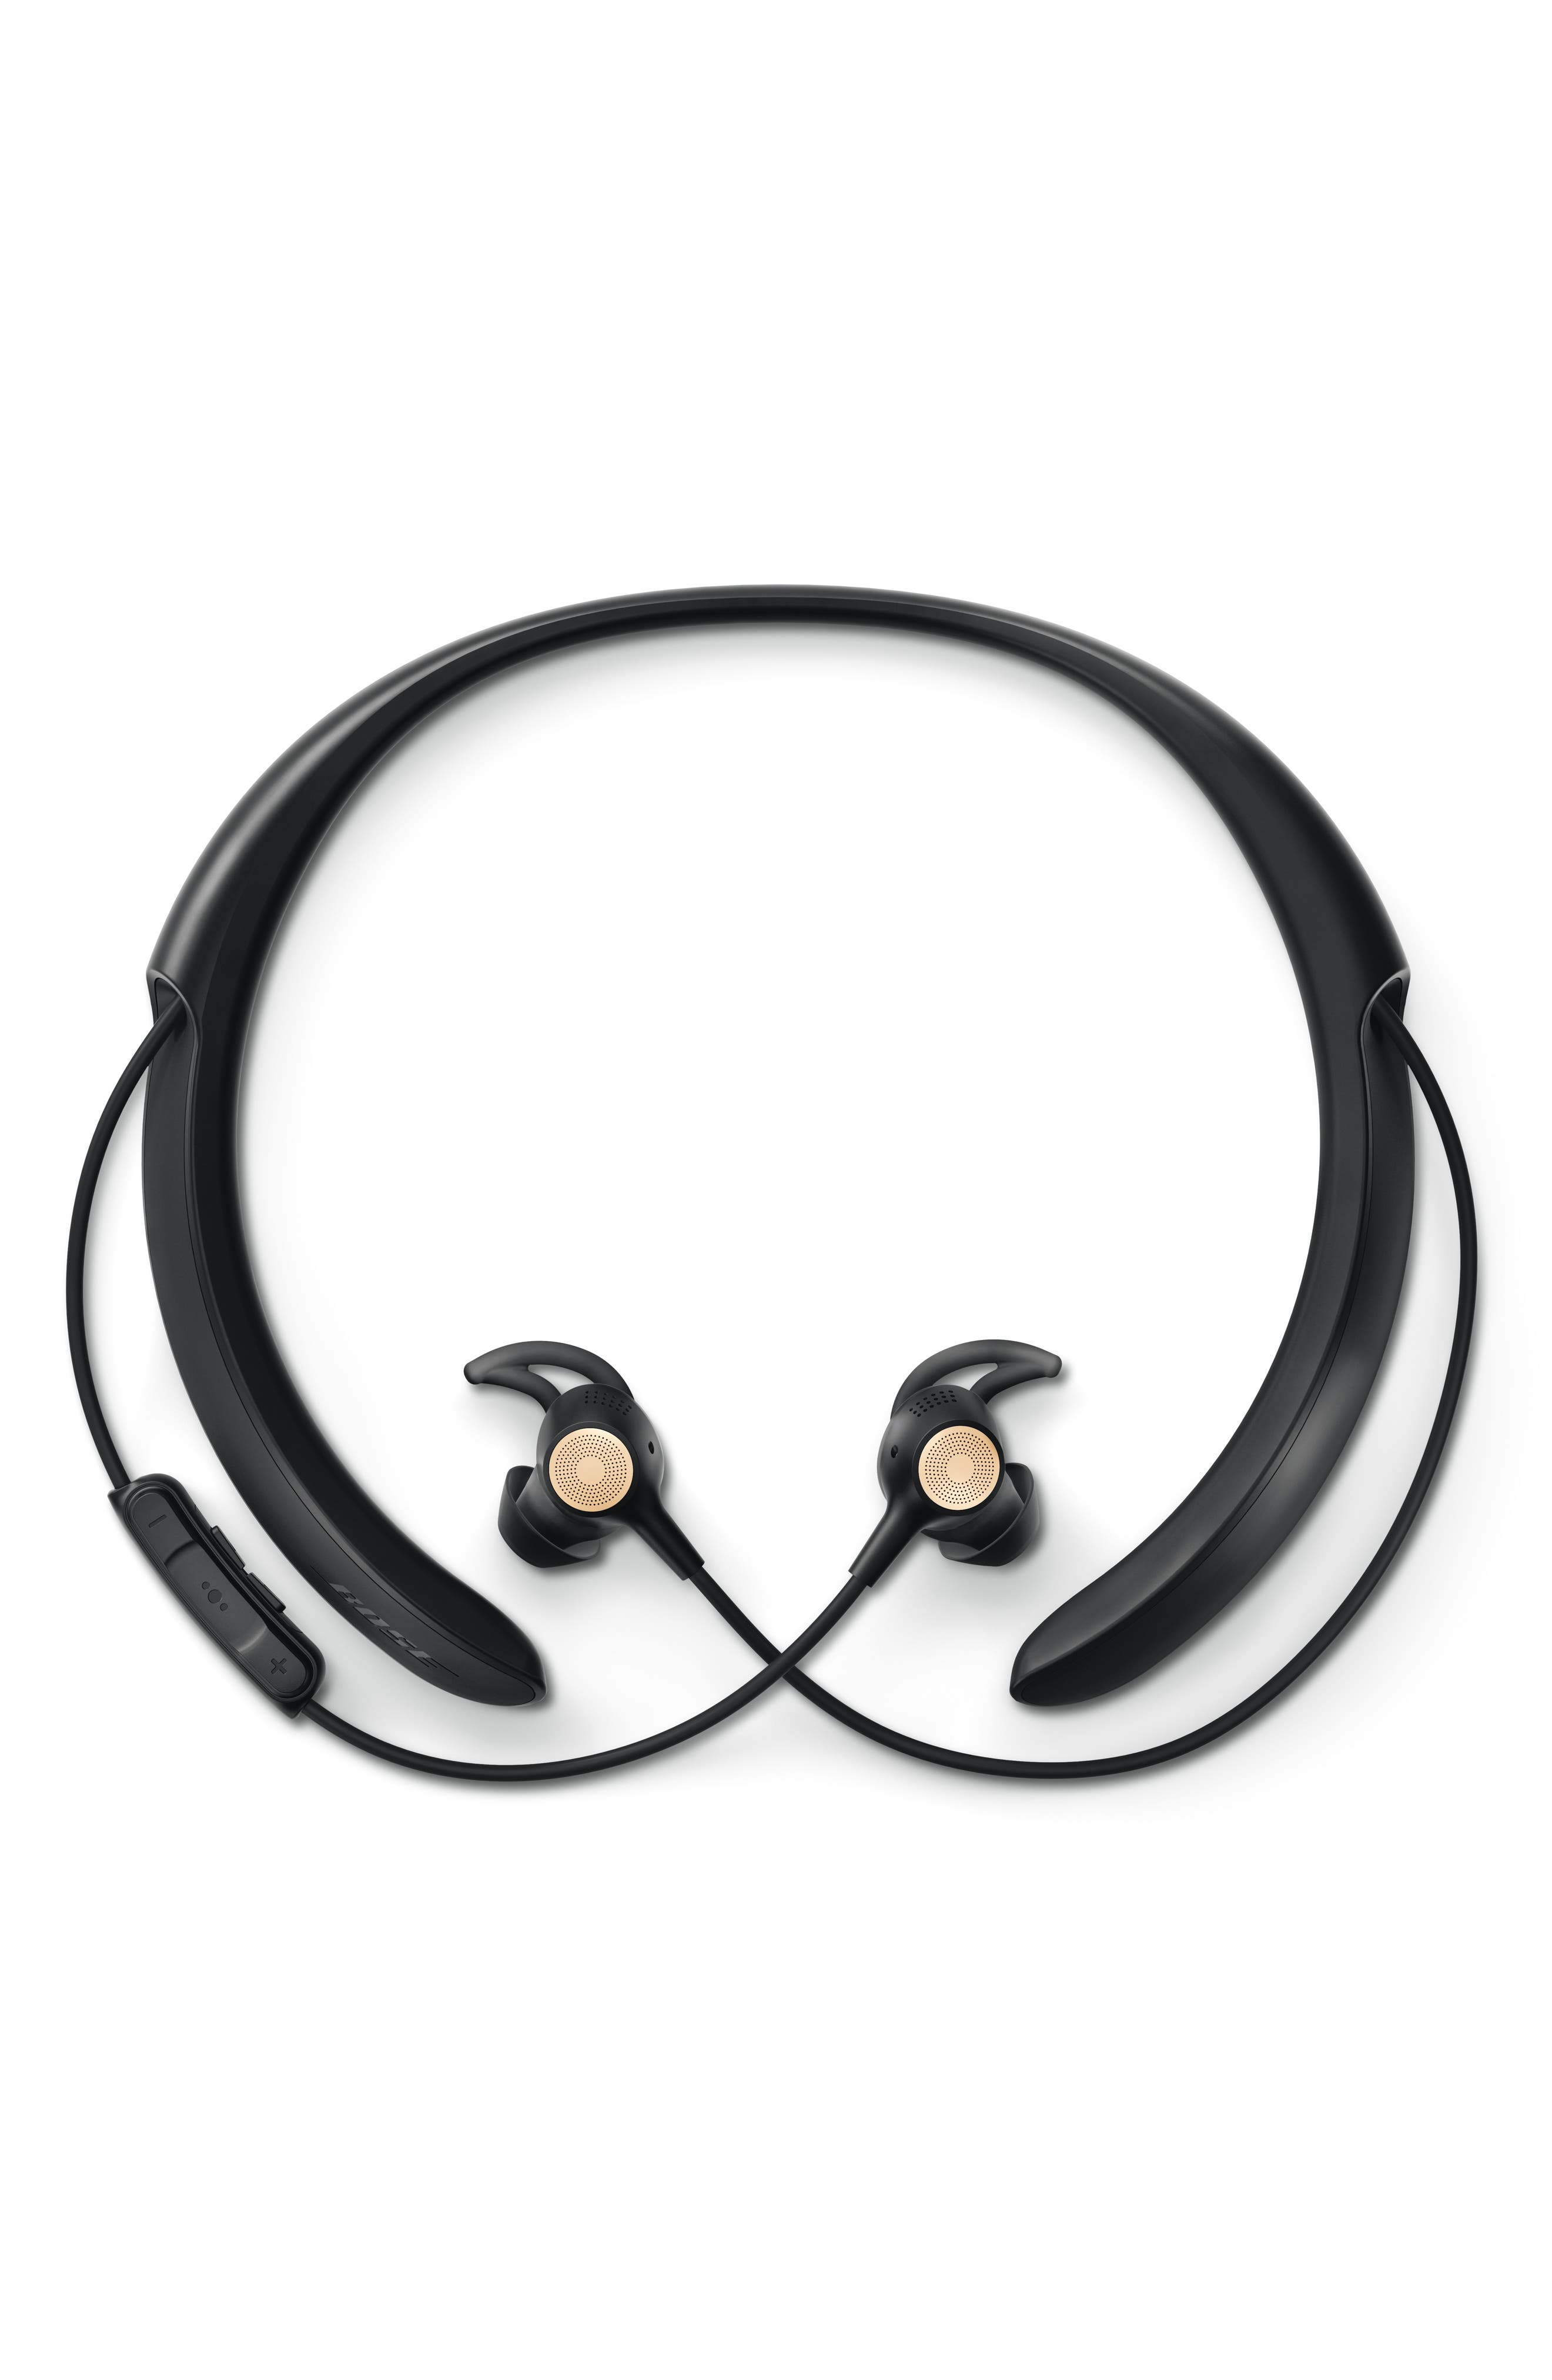 Hearphones Conversation Enhancing Headphones,                             Alternate thumbnail 2, color,                             BLACK